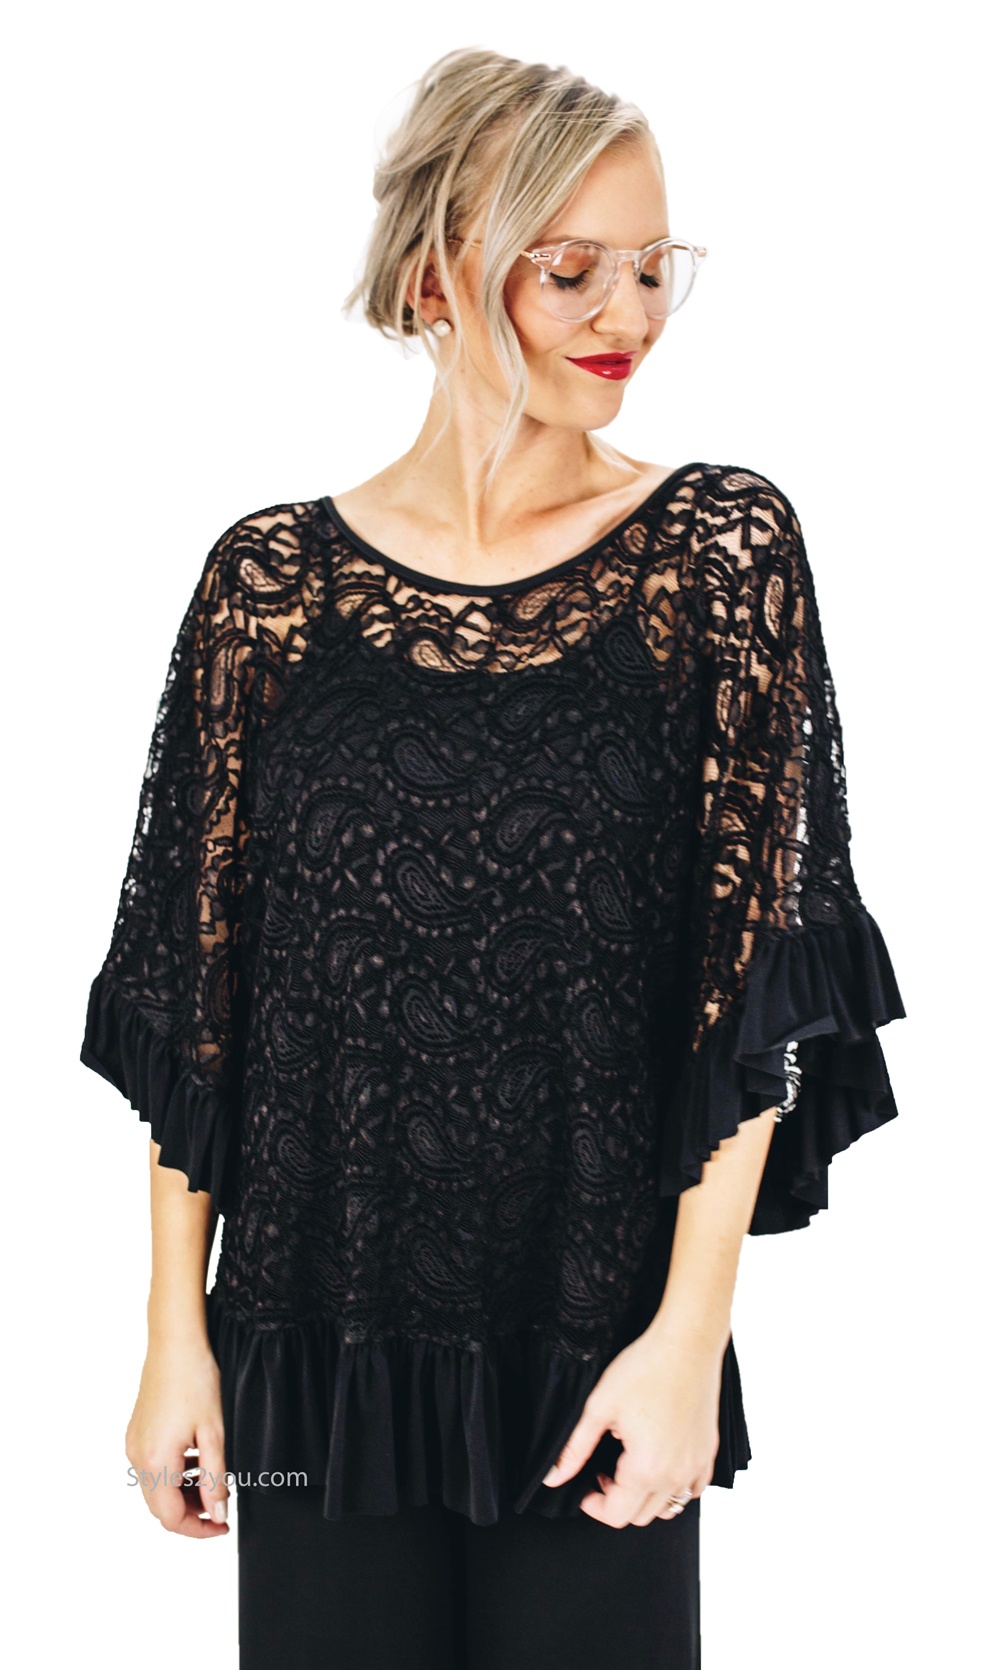 Abilene Ladies Boho Chic All Lace Blouse In Black 8196